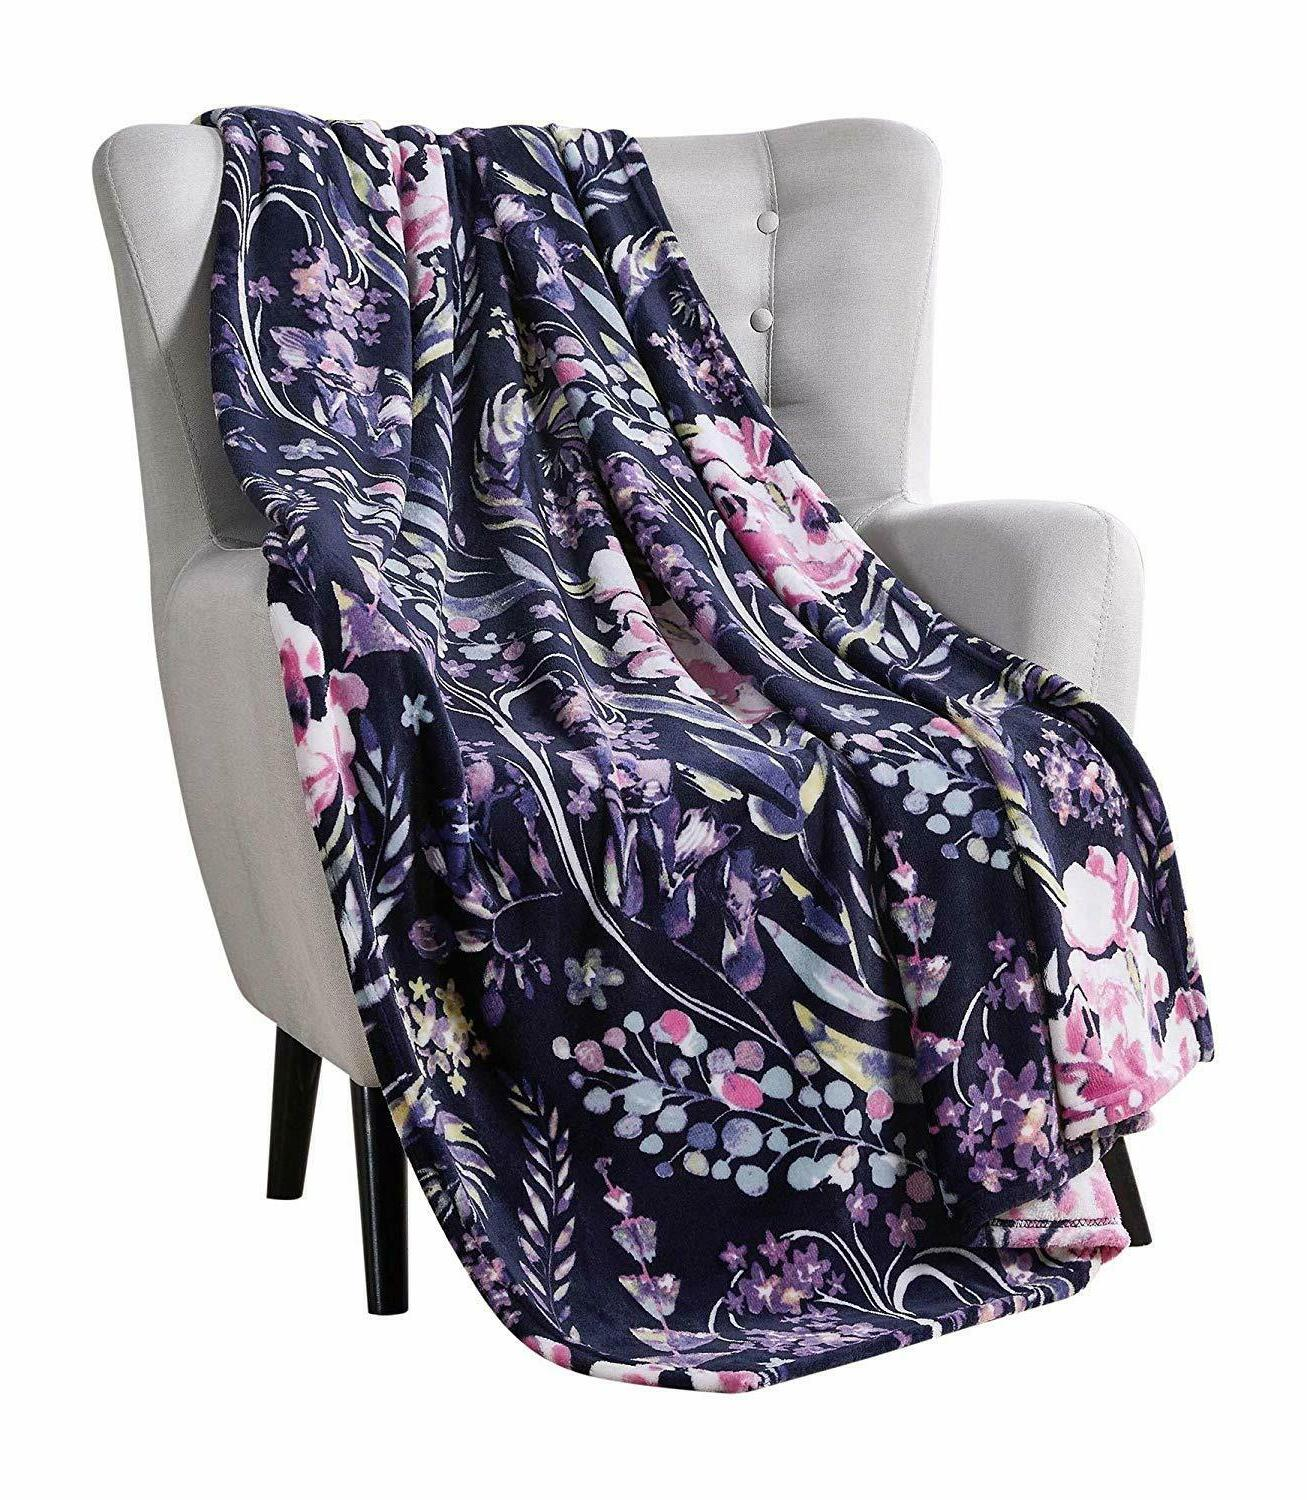 vcny decorative throw blanket swaying floral vibrant